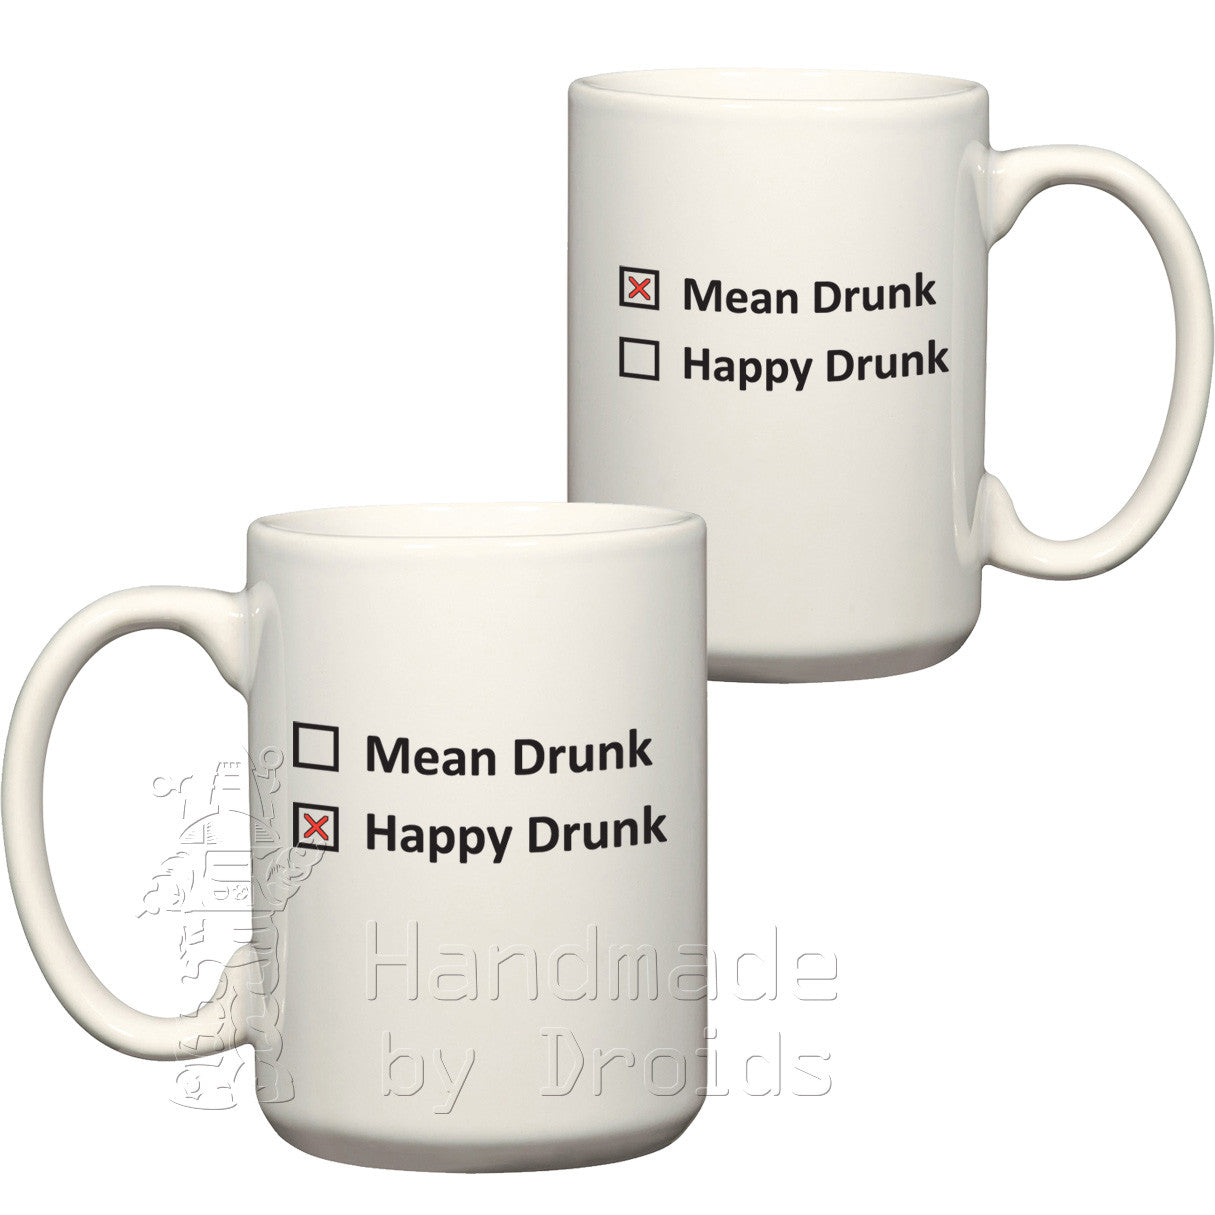 Mean drunk / happy drunk (15oz) Coffee Mug